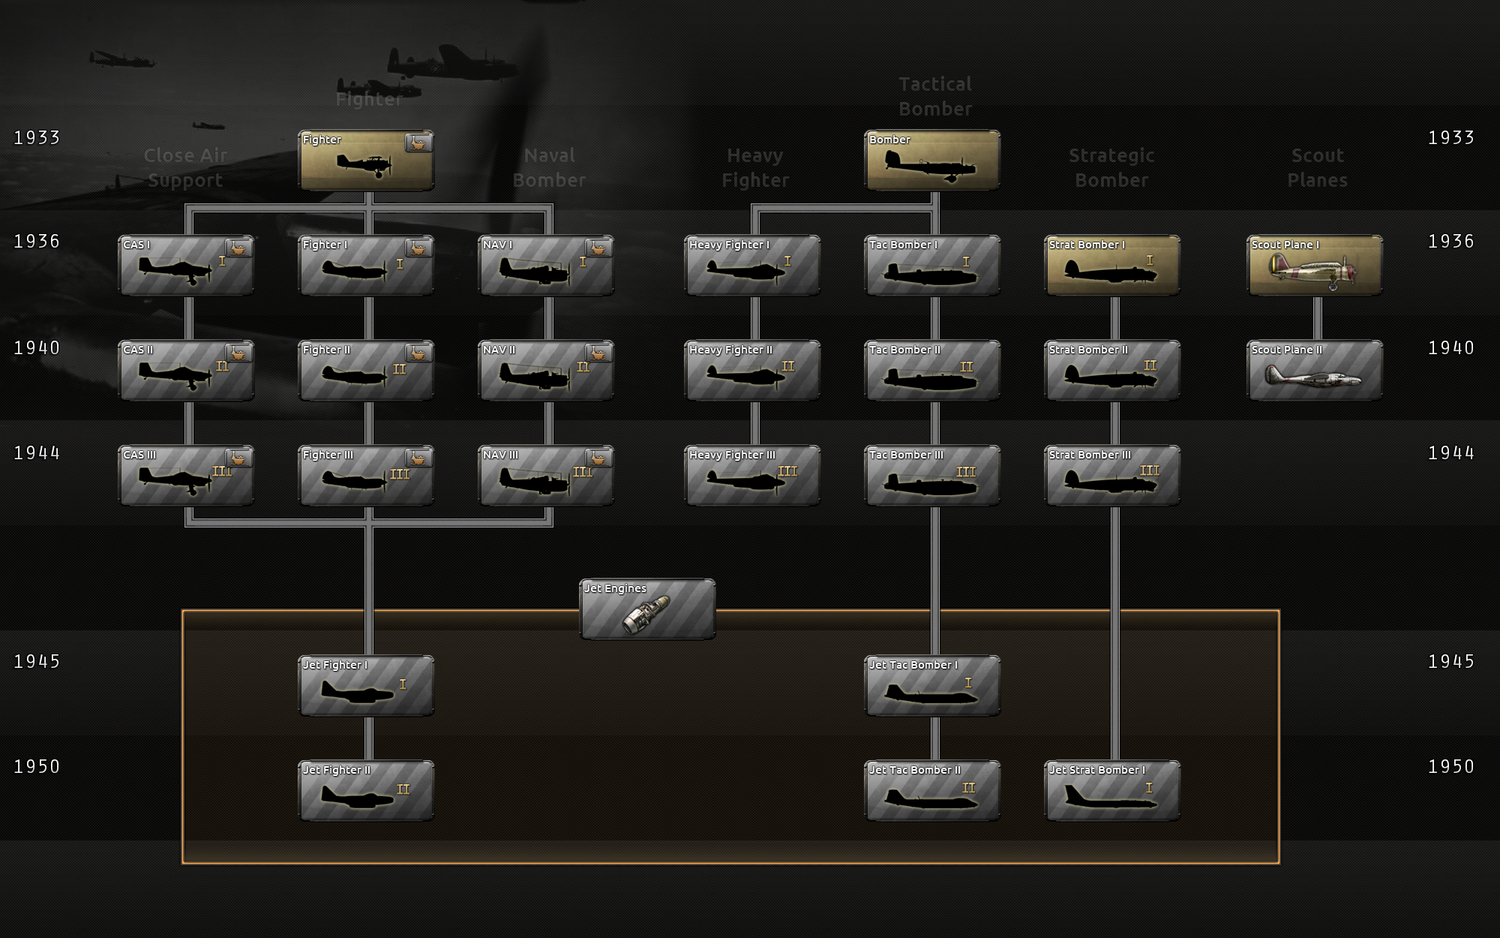 Air technology - Hearts of Iron 4 Wiki